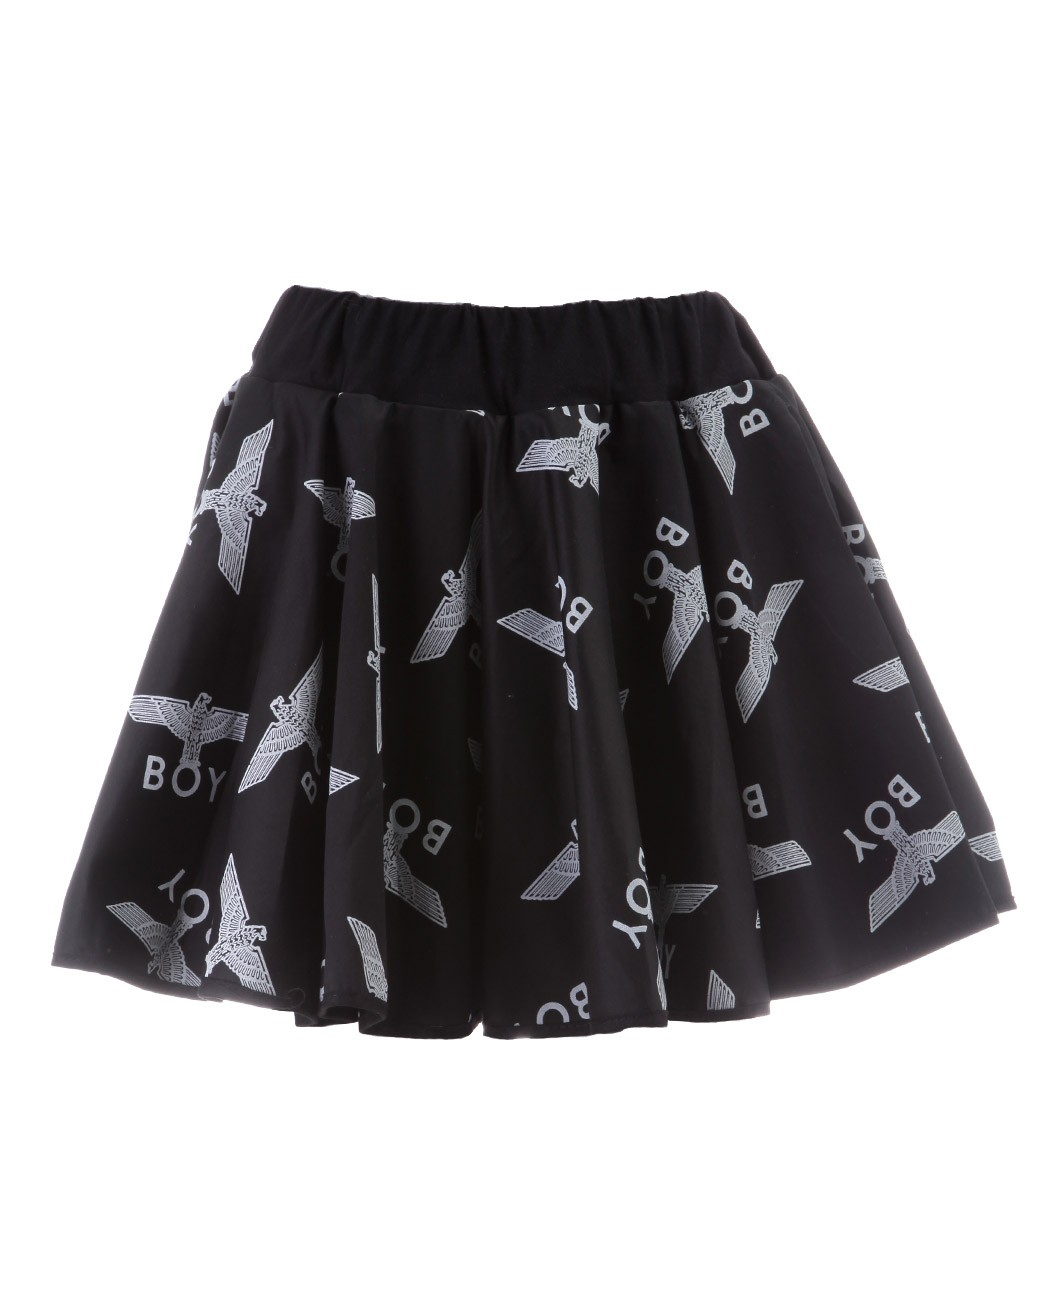 01531c6296643 Boy London - Multi Logo Rara Skirt - Black